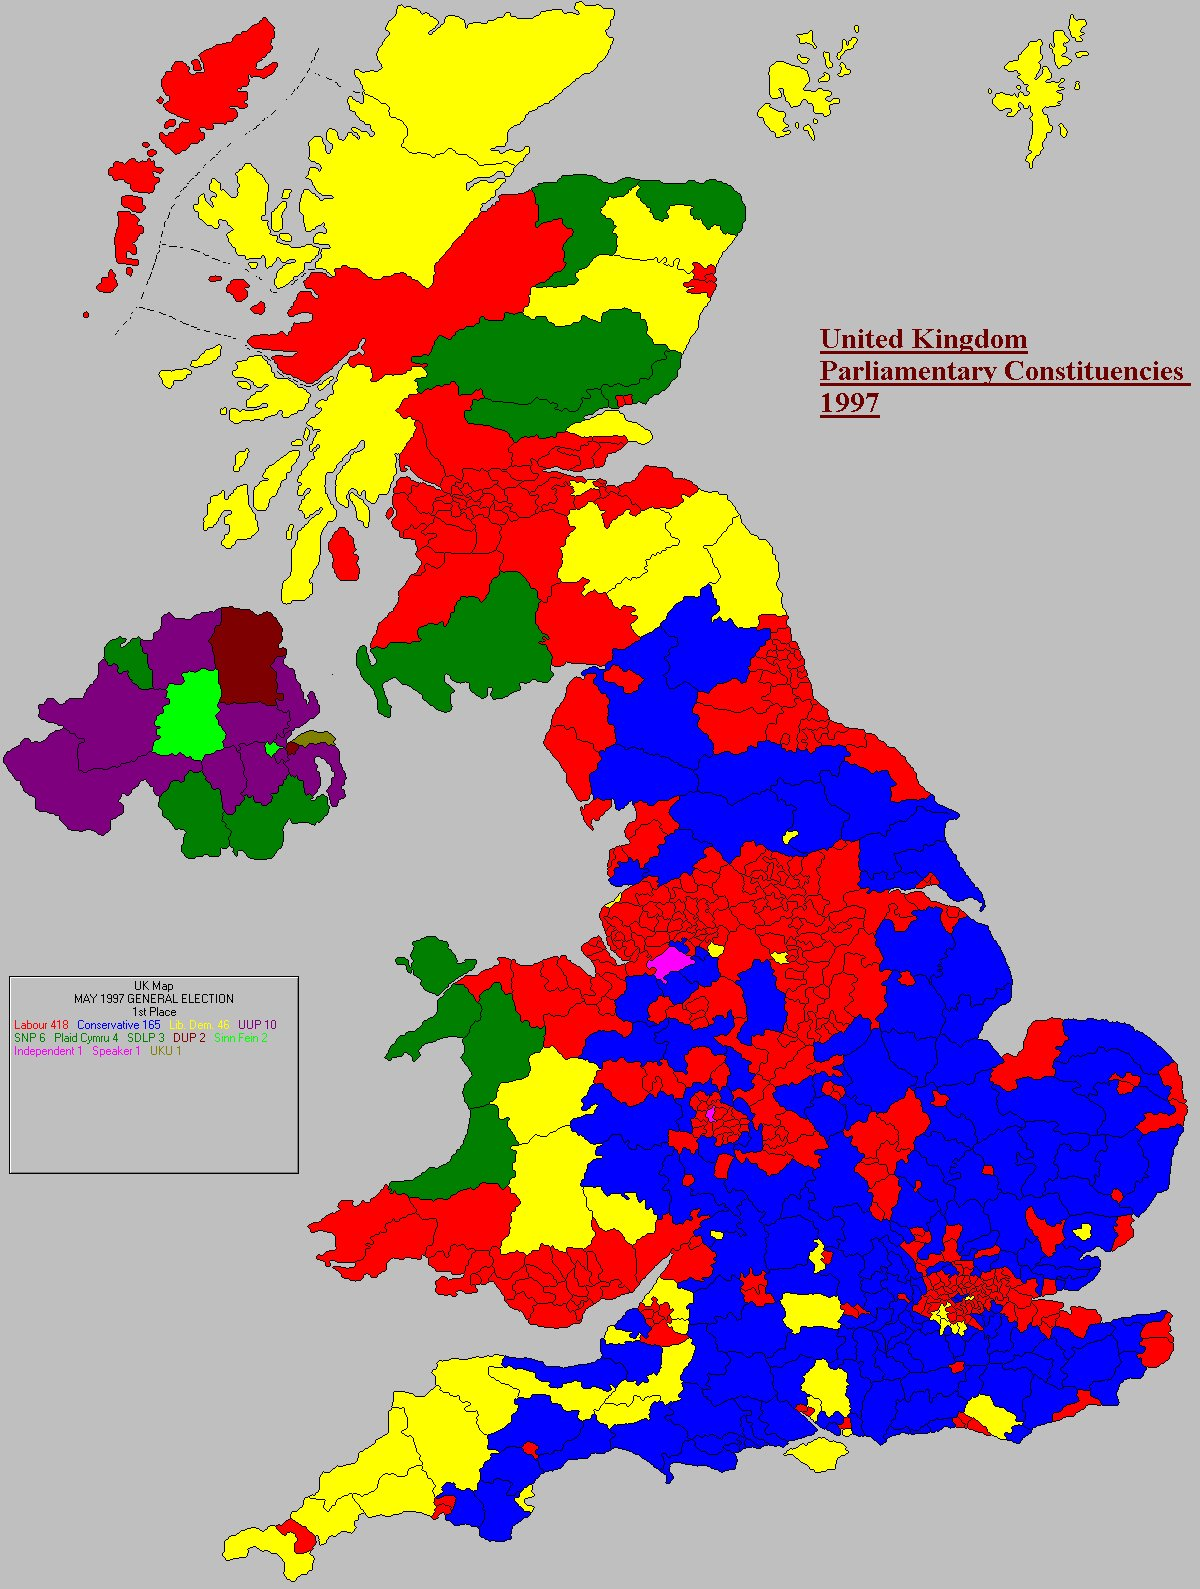 UK Elect : 1997 General Election